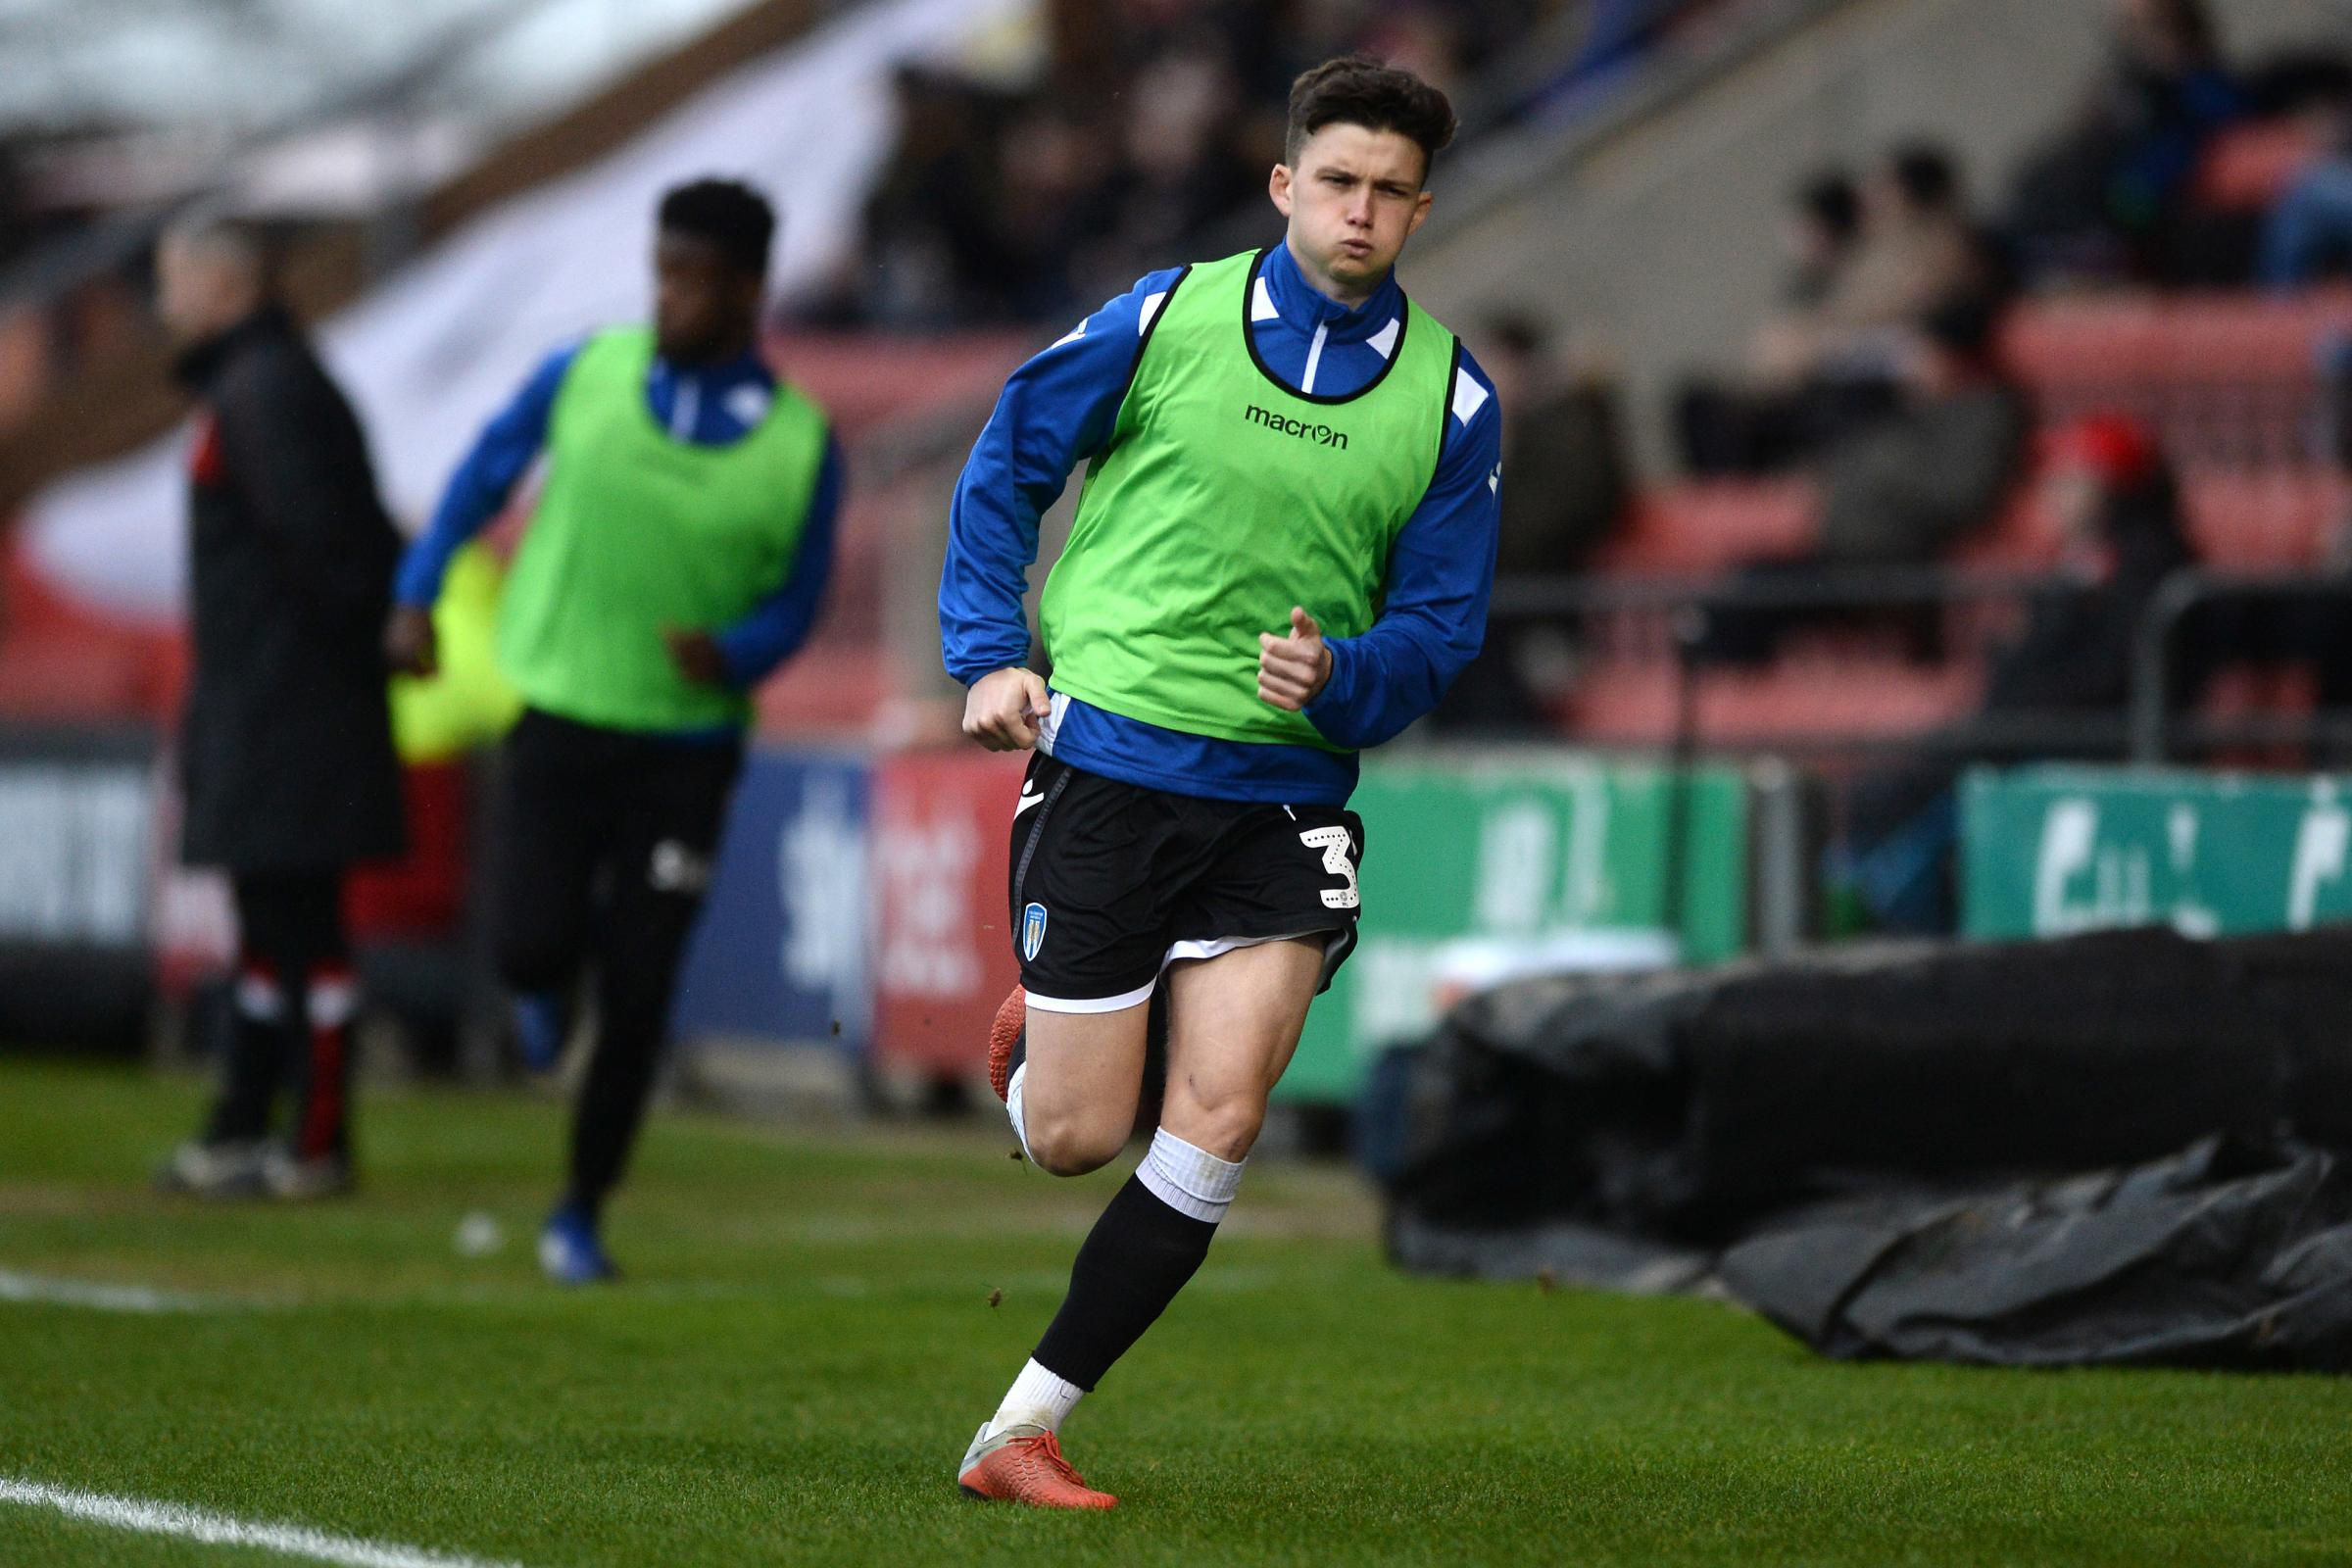 Back in the fold - Colchester United midfielder Louis Dunne played 45 minutes for the under-23s last night Picture: RICHARD BLAXALL